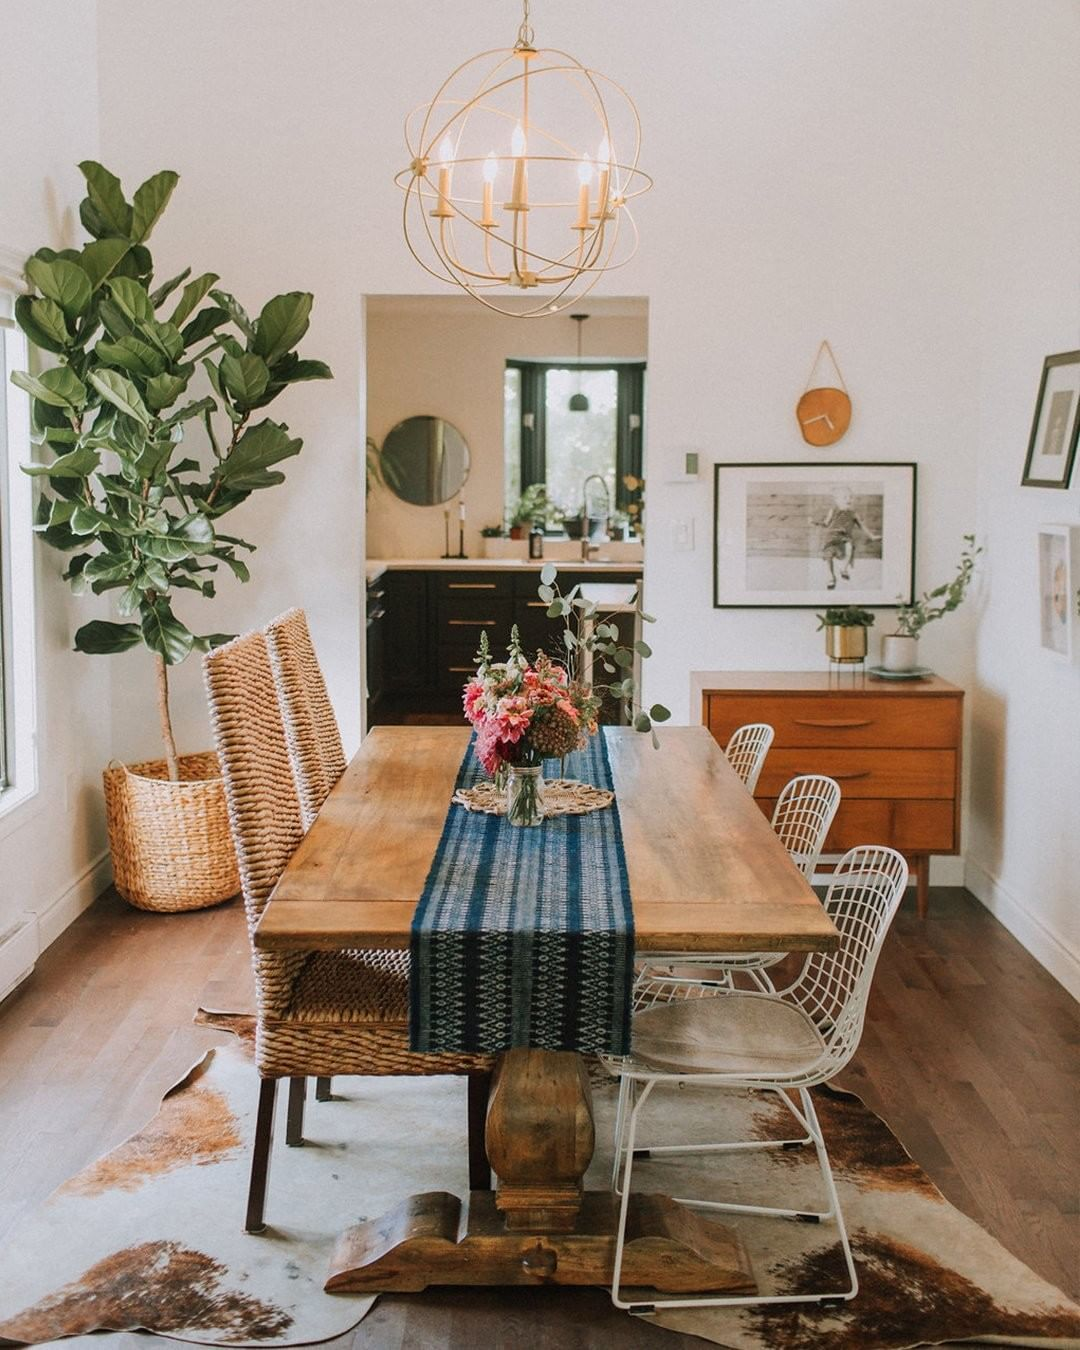 The Open And Airy Bohemian Style